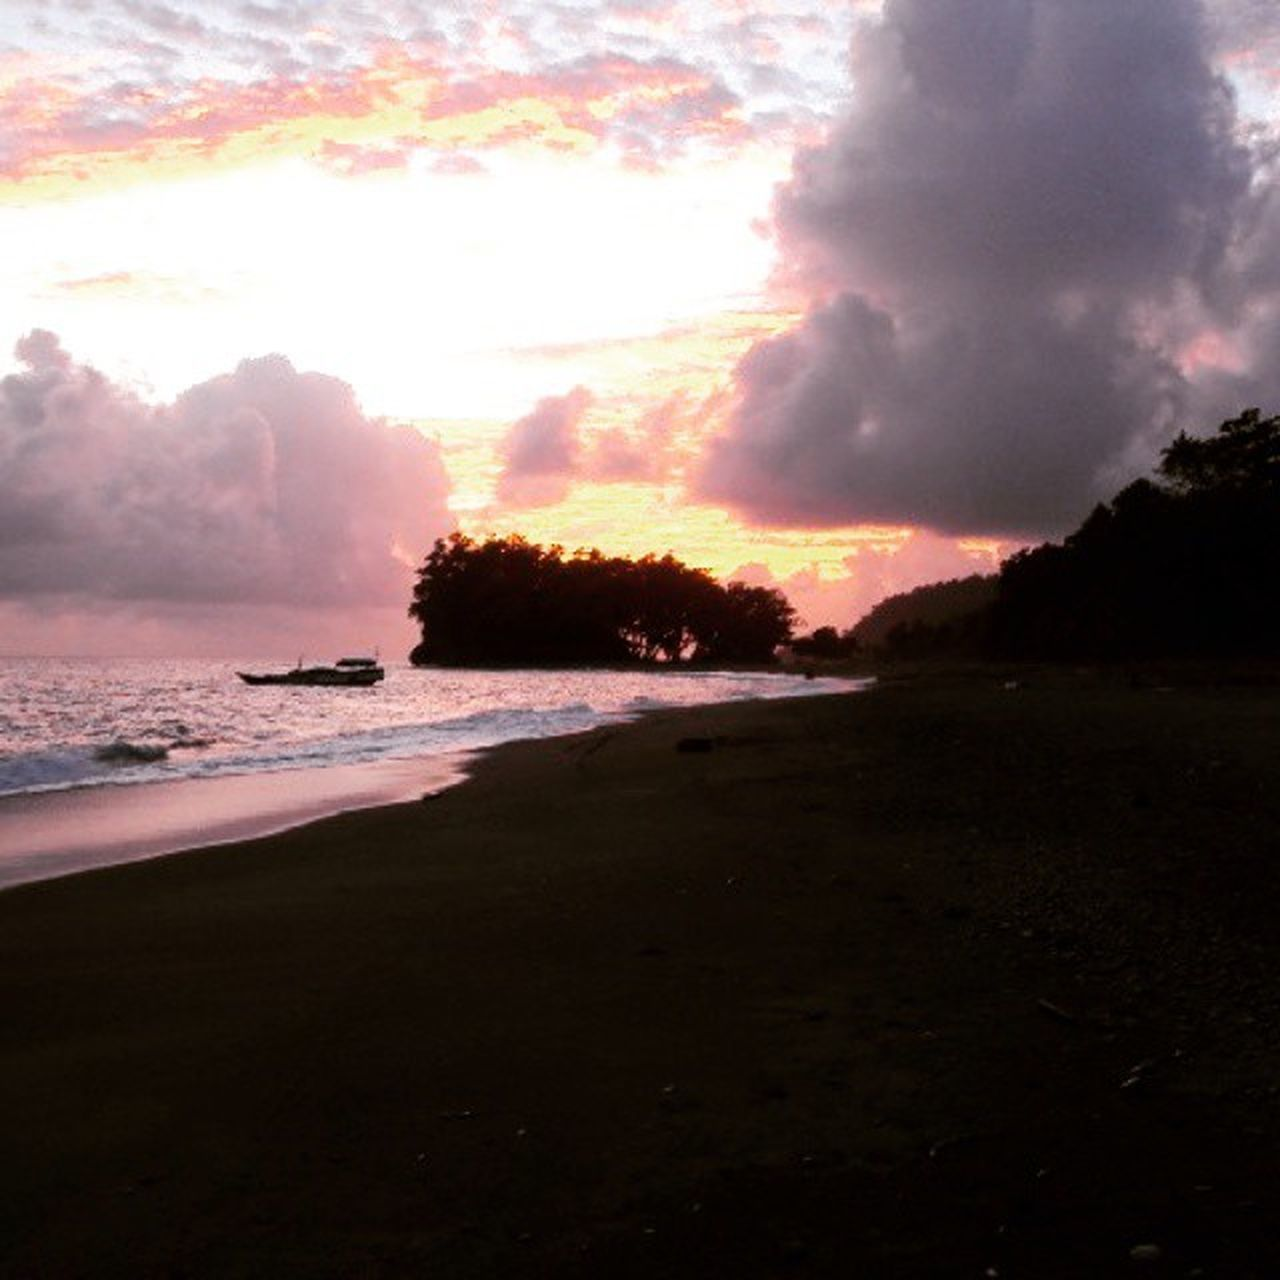 sea, sunset, beach, nature, sky, water, no people, silhouette, sun, scenics, sand, beauty in nature, outdoors, landscape, day